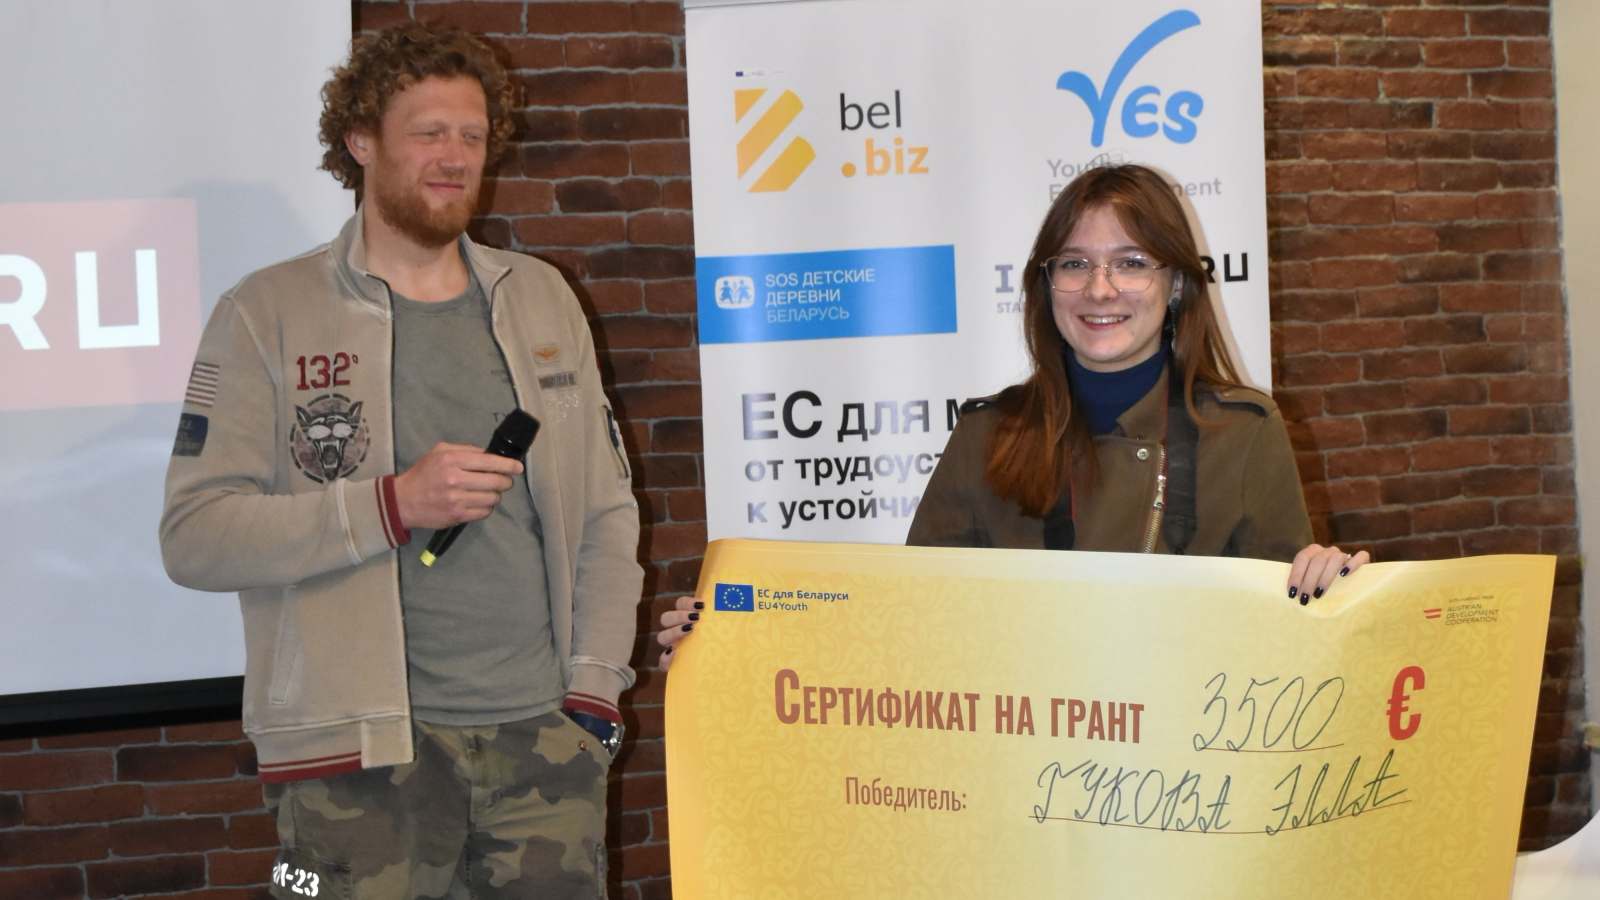 From early age Ella dreamed to start her own business. EU4Youth project helped implement her dream